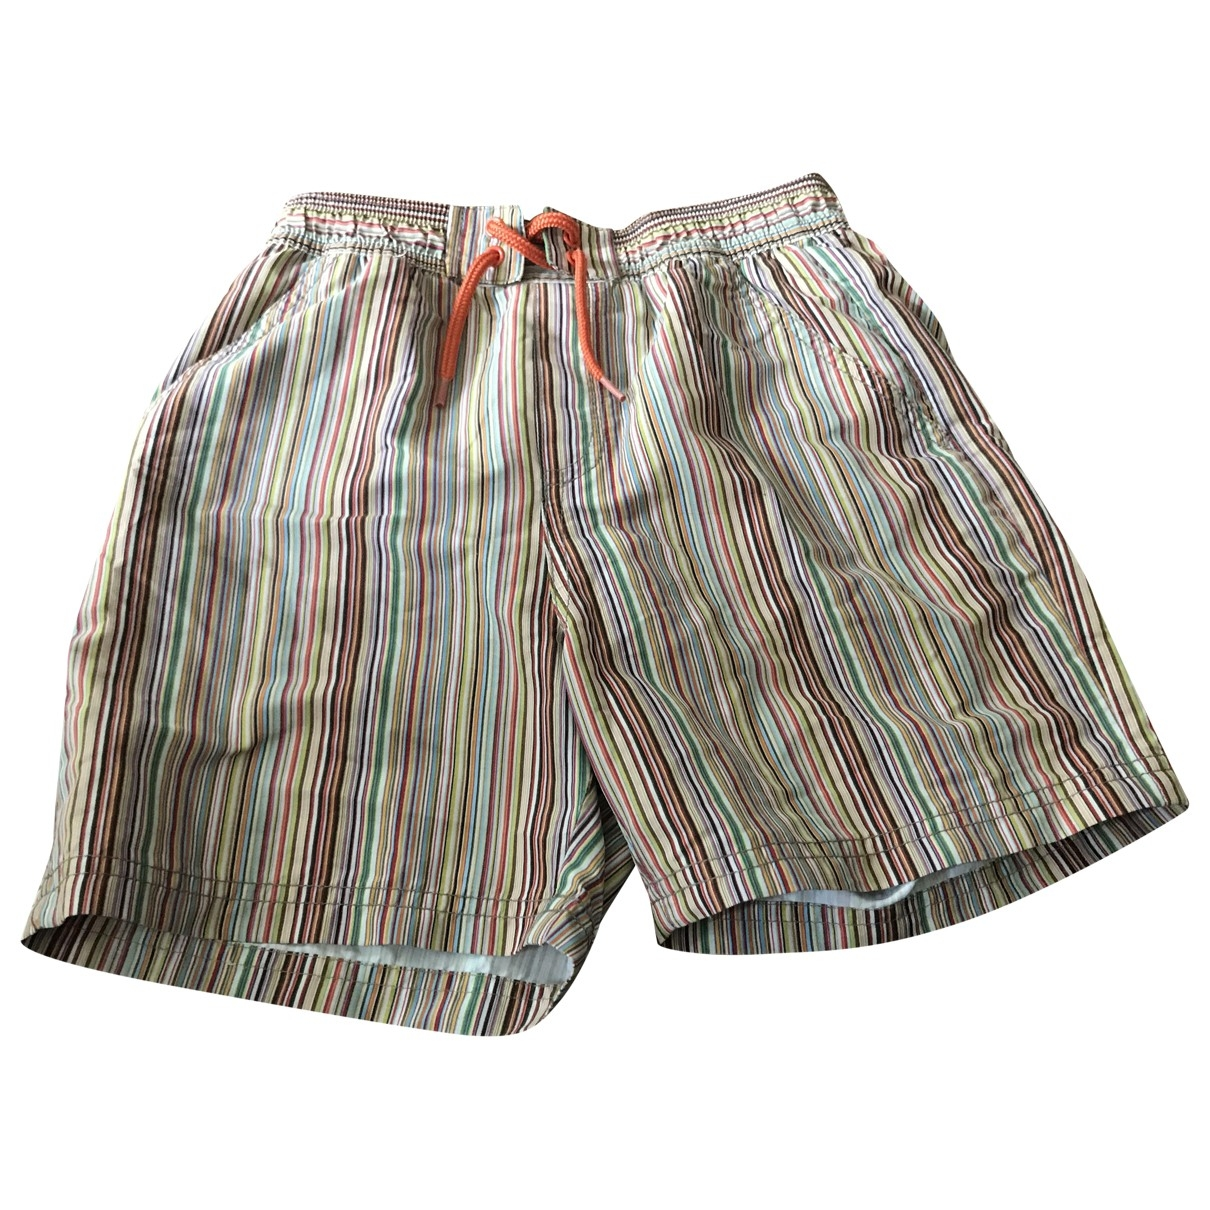 Paul Smith \N Multicolour Shorts for Kids 10 years - up to 142cm FR